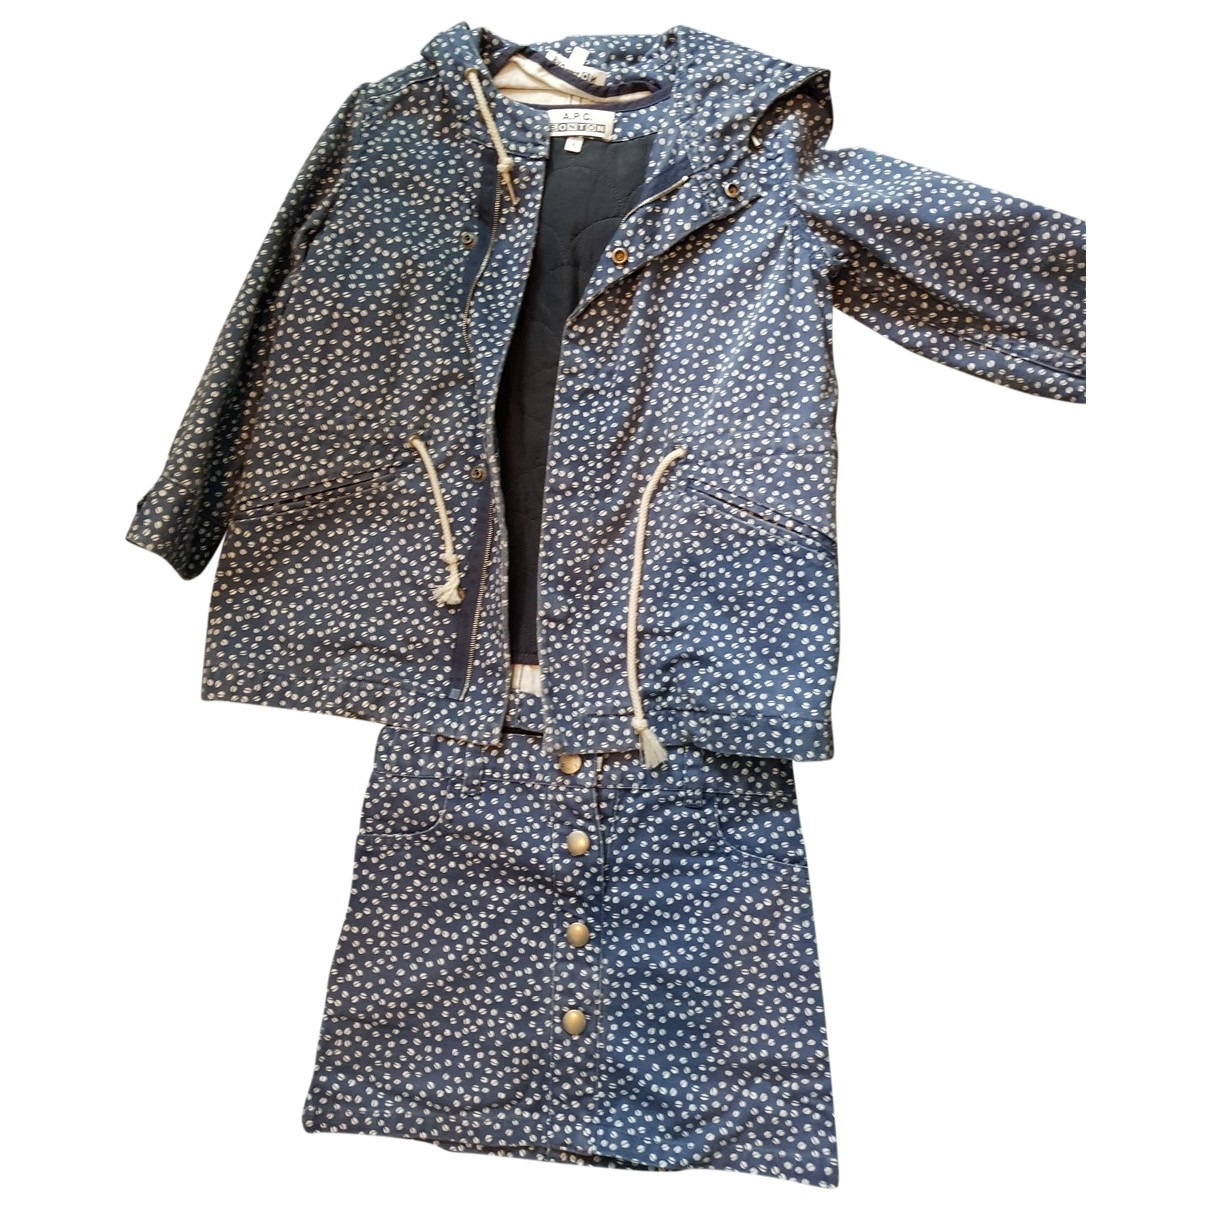 Bonton \N Blue Cotton Outfits for Kids 4 years - up to 102cm FR